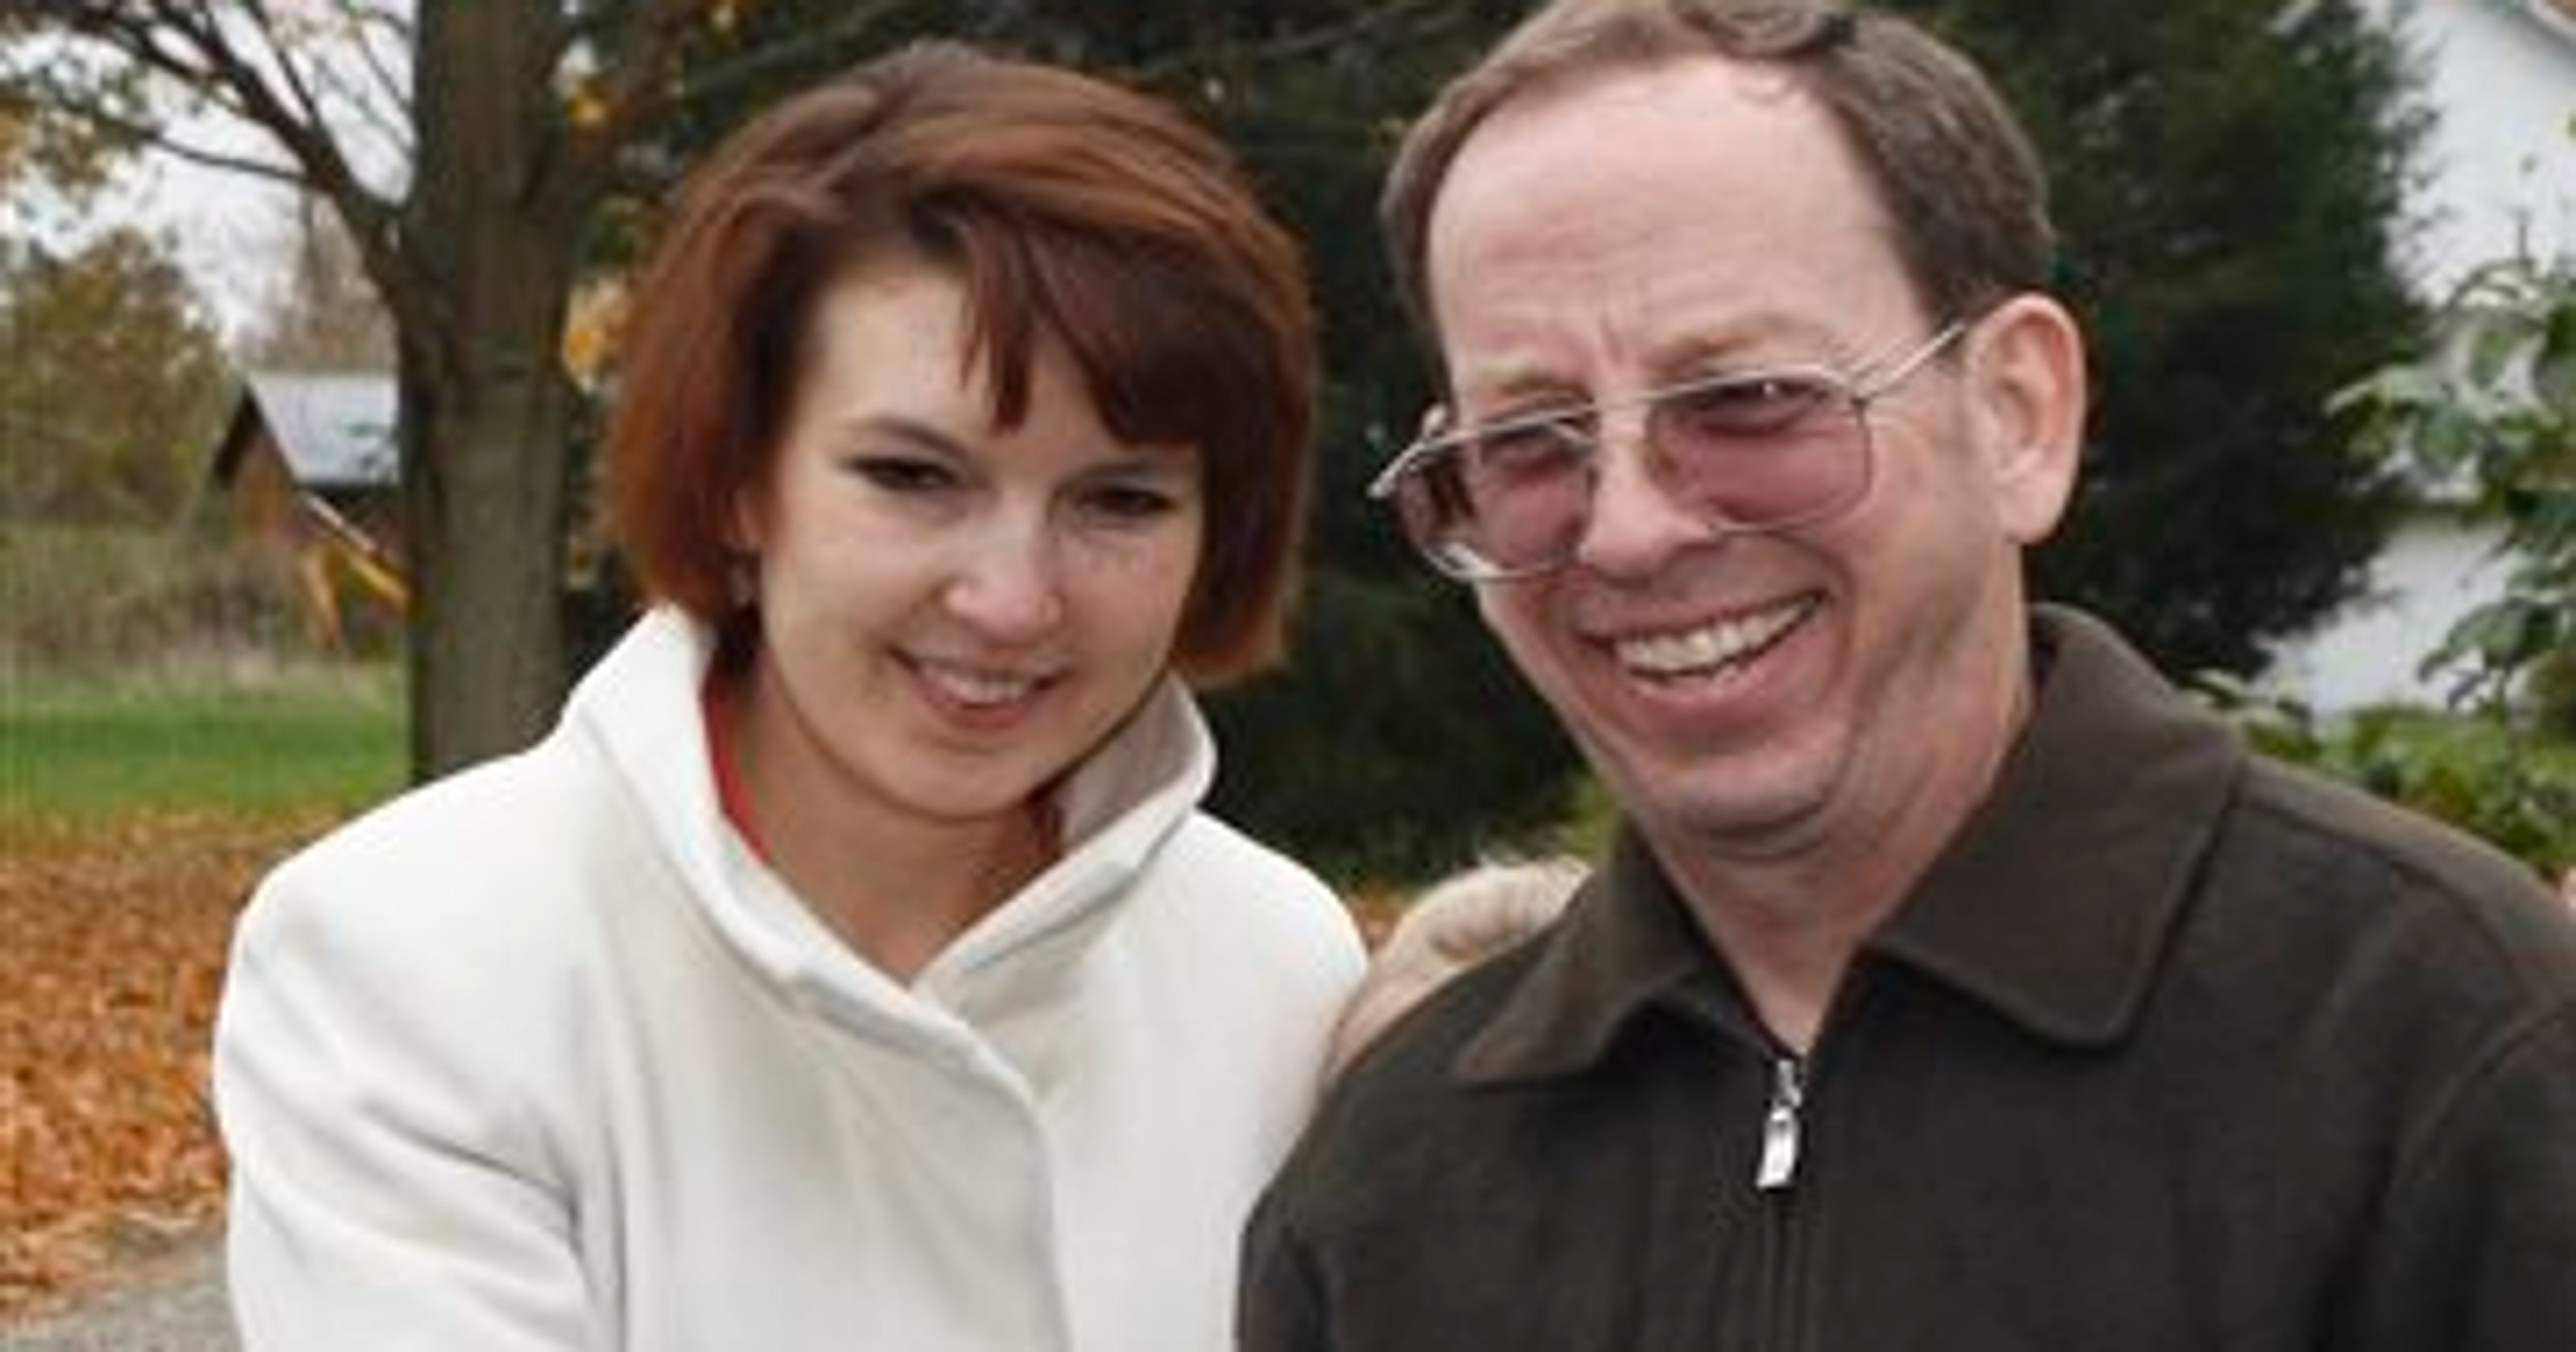 Miamisburg man detained in North Korea gets job back